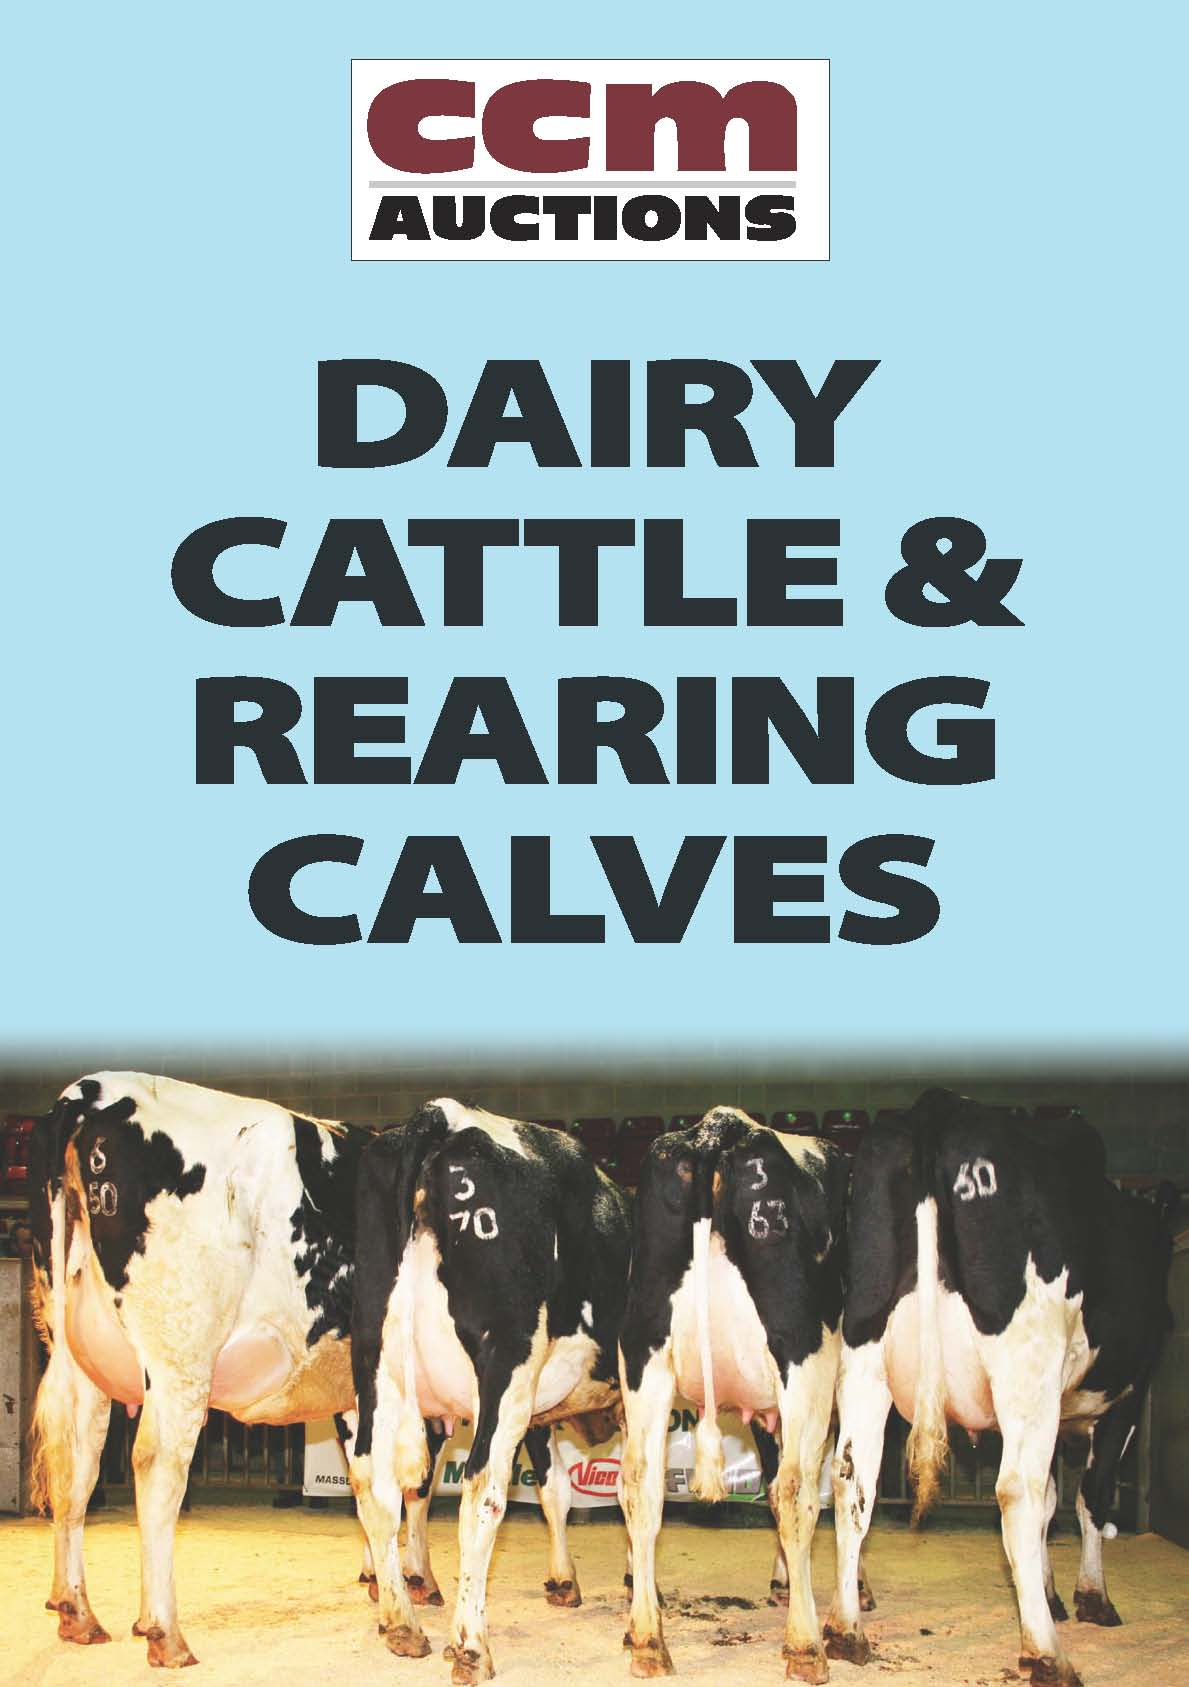 DAIRY & CALVES - MONDAY 28TH NOVEMBER 2016